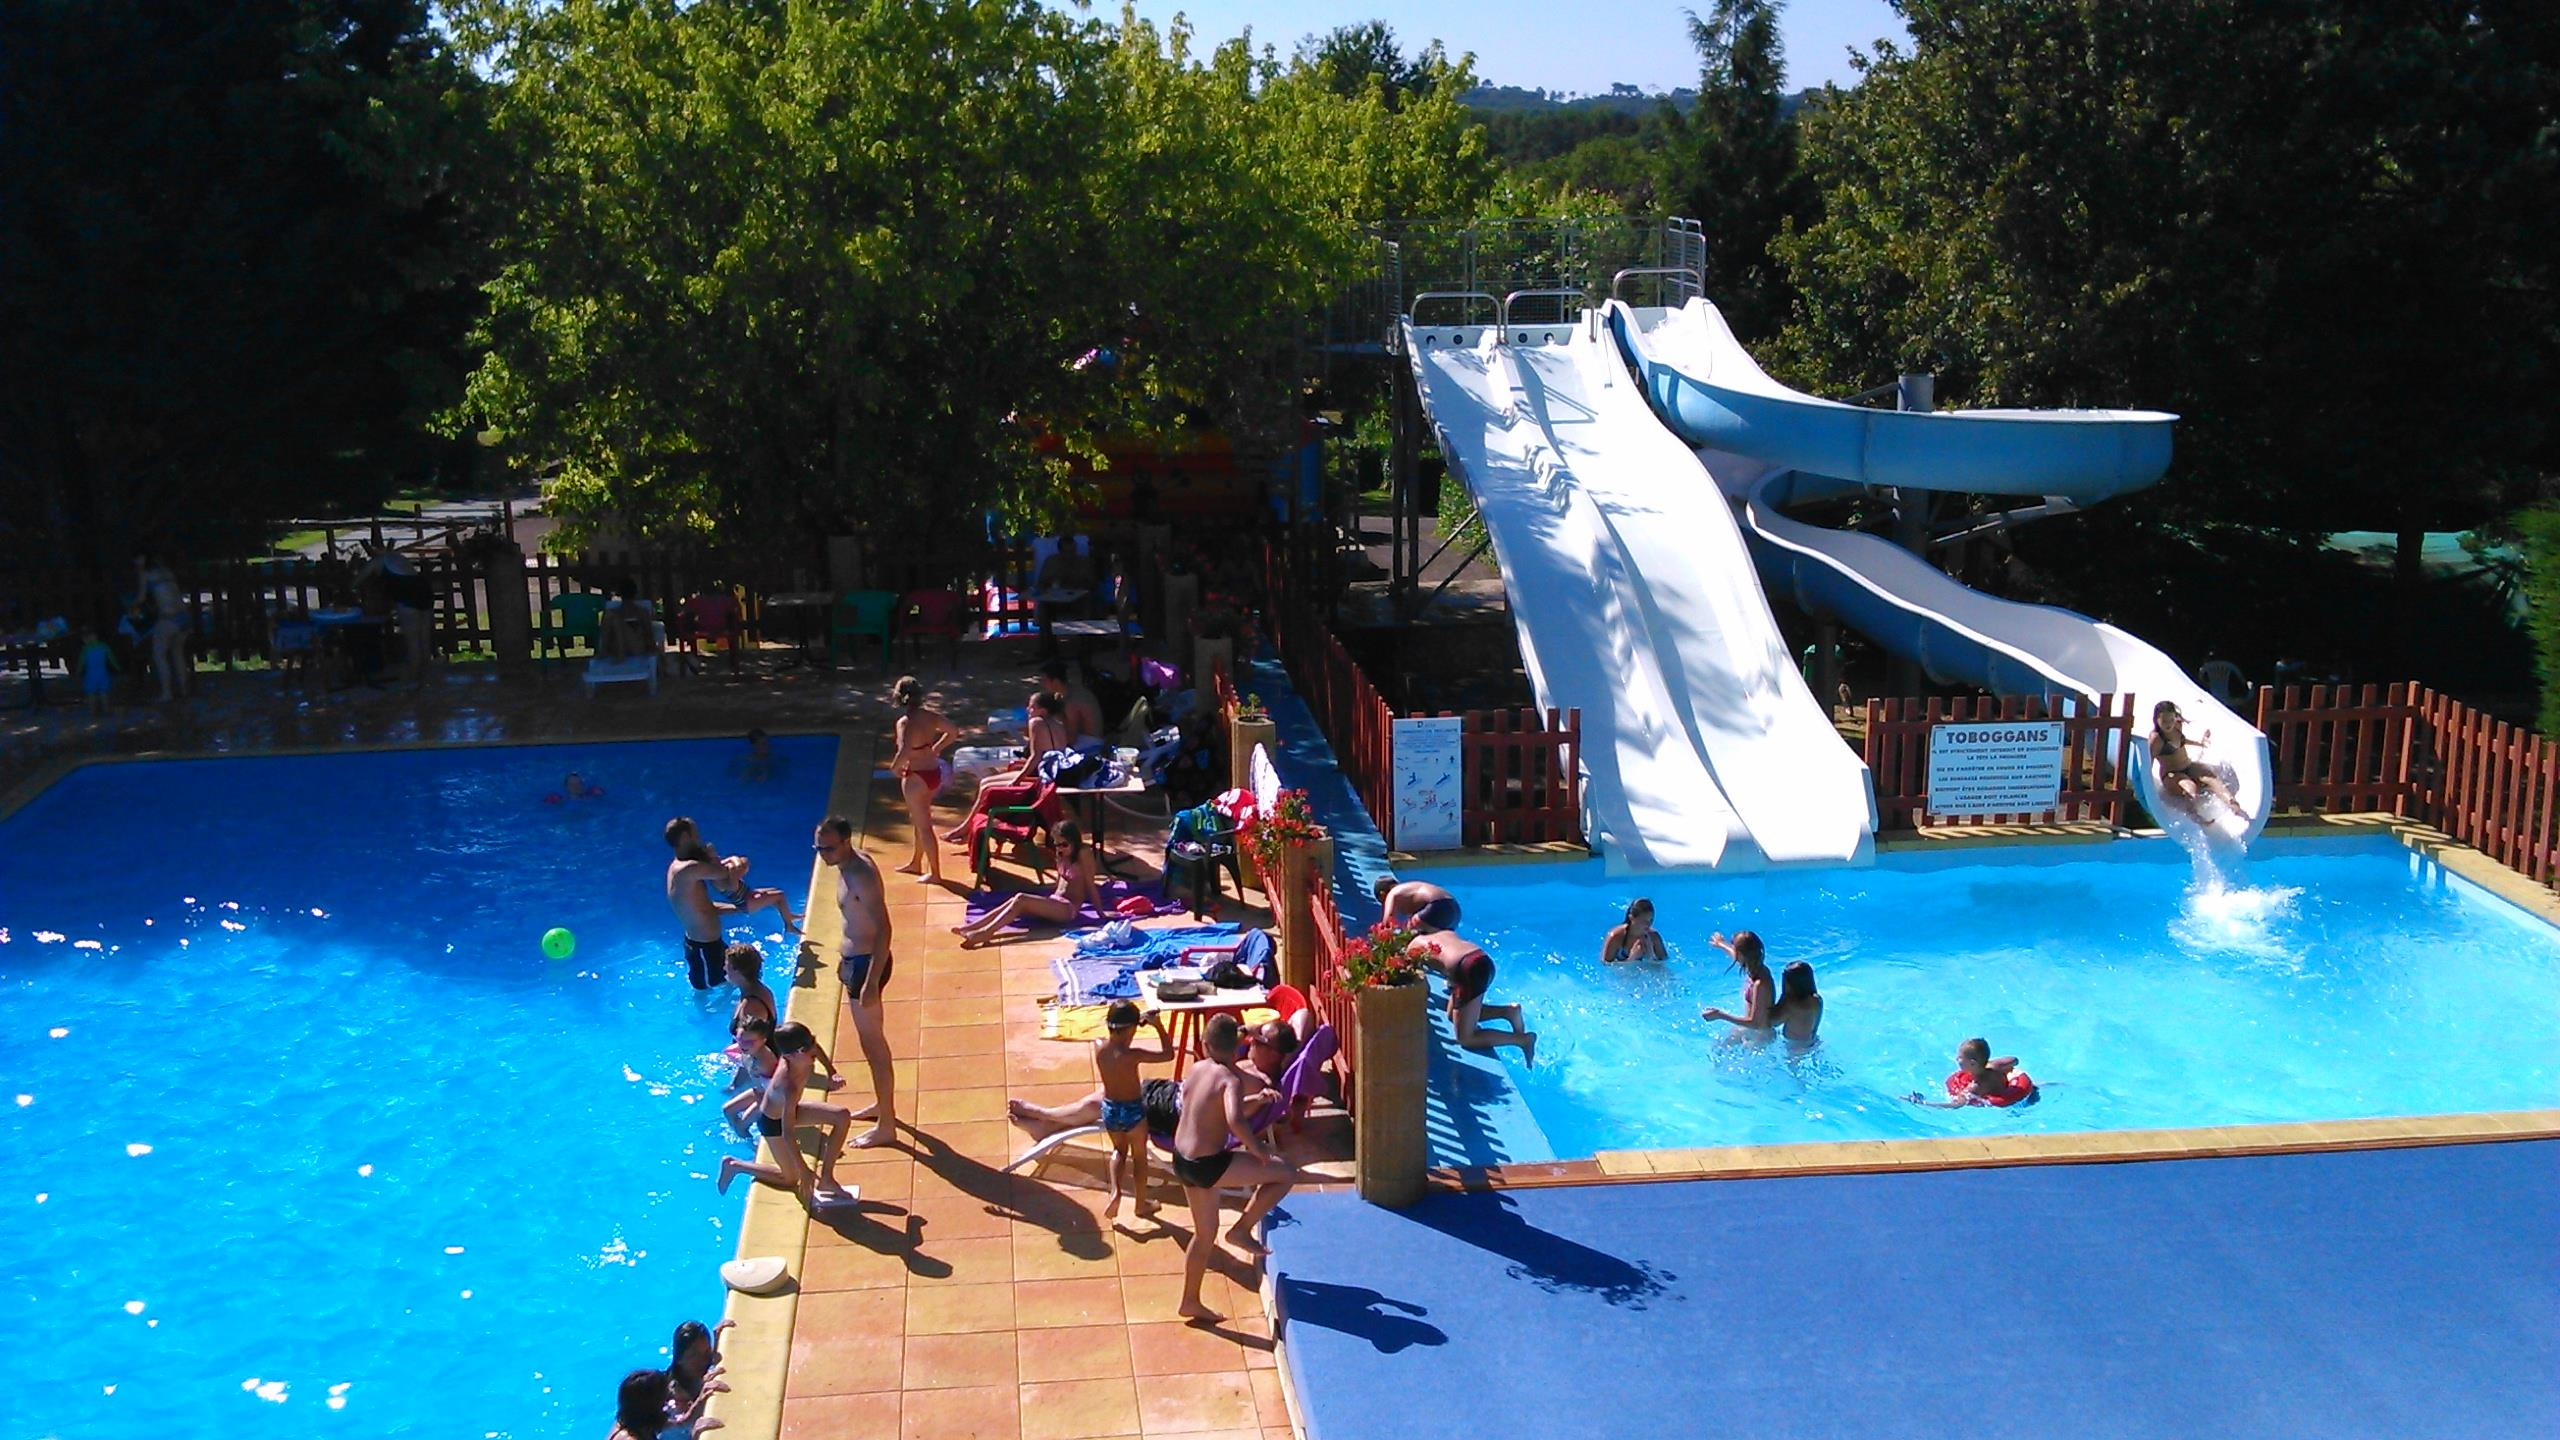 Establishment Camping le Pigeonnier - Saint Crepin Carlucet